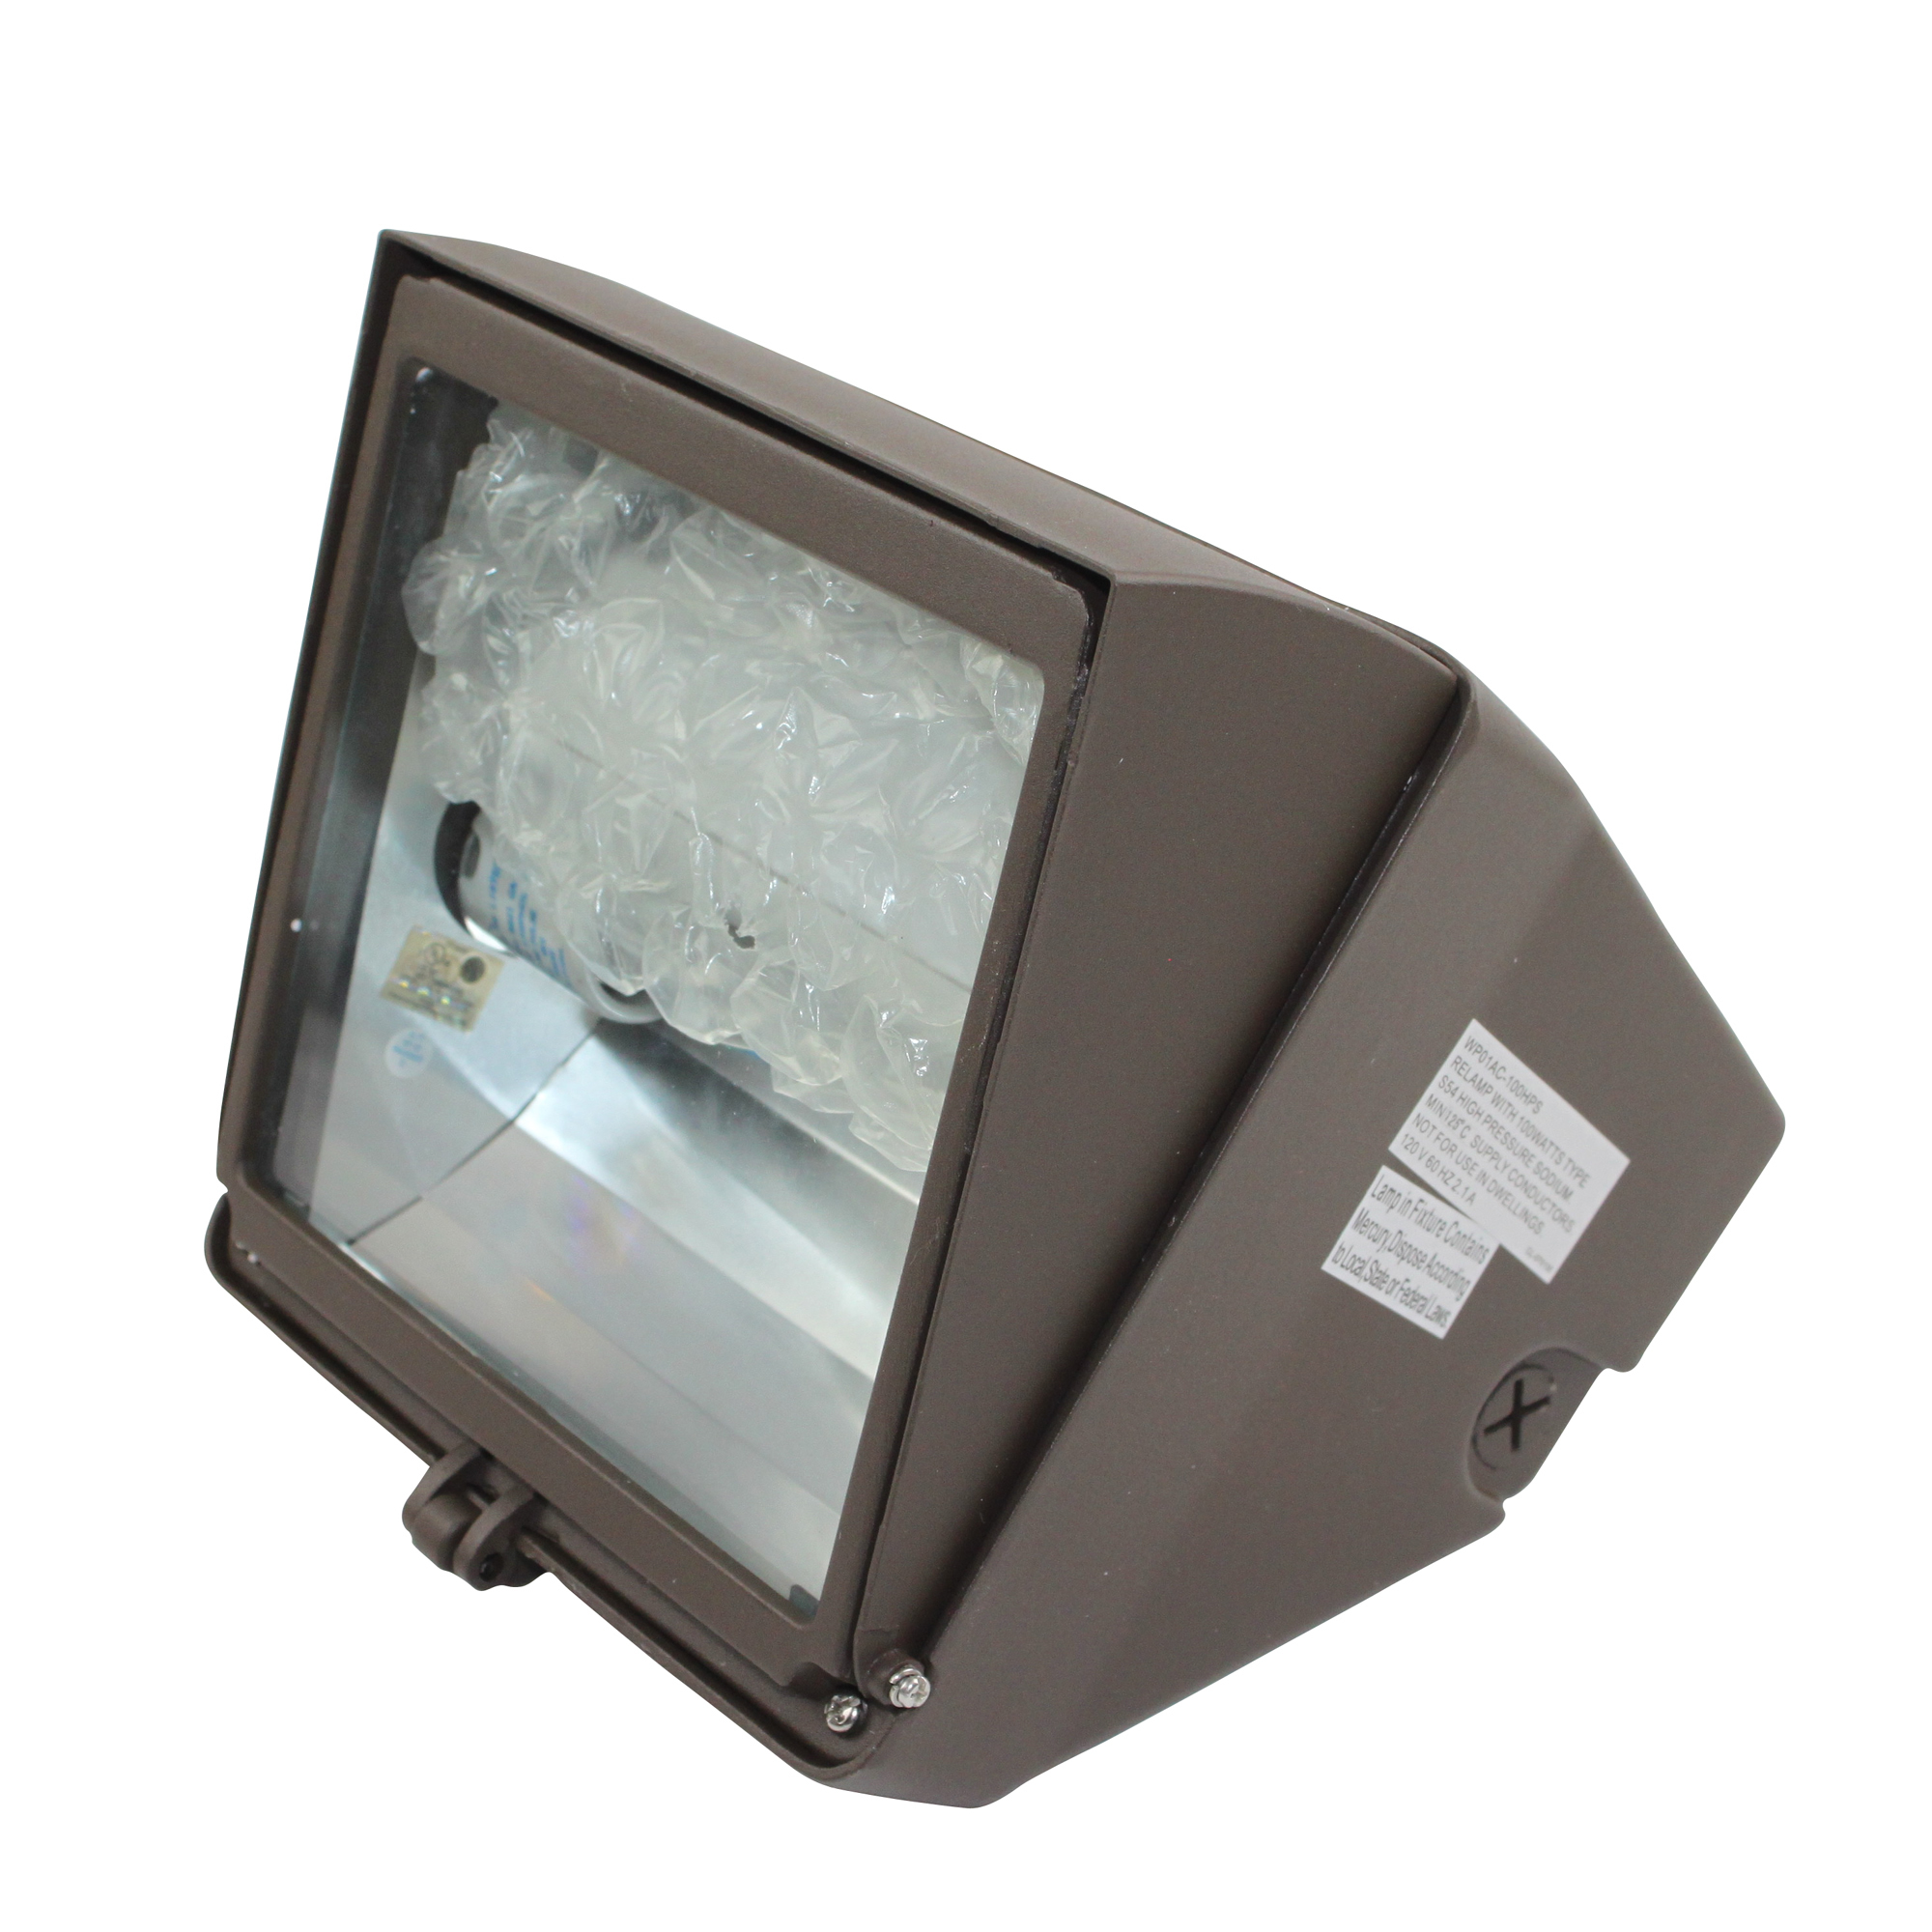 Nsi Wpca70Mh Adjustable Compact Wallpack Metal Halide 70W 120V 60Hz Outdoor Use; Bronze